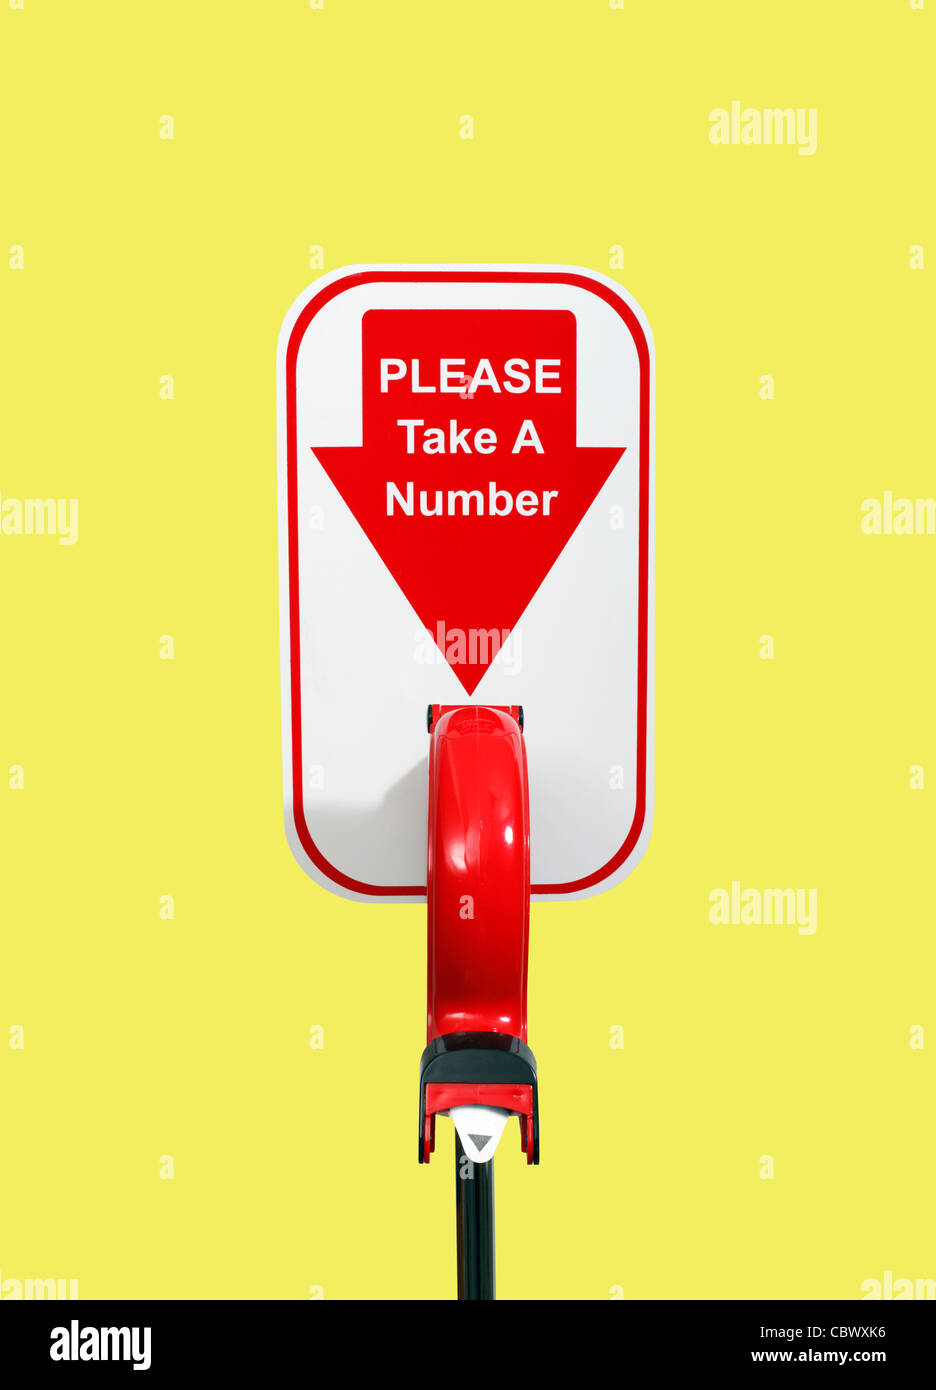 Please take a Number Machine - Stock Image